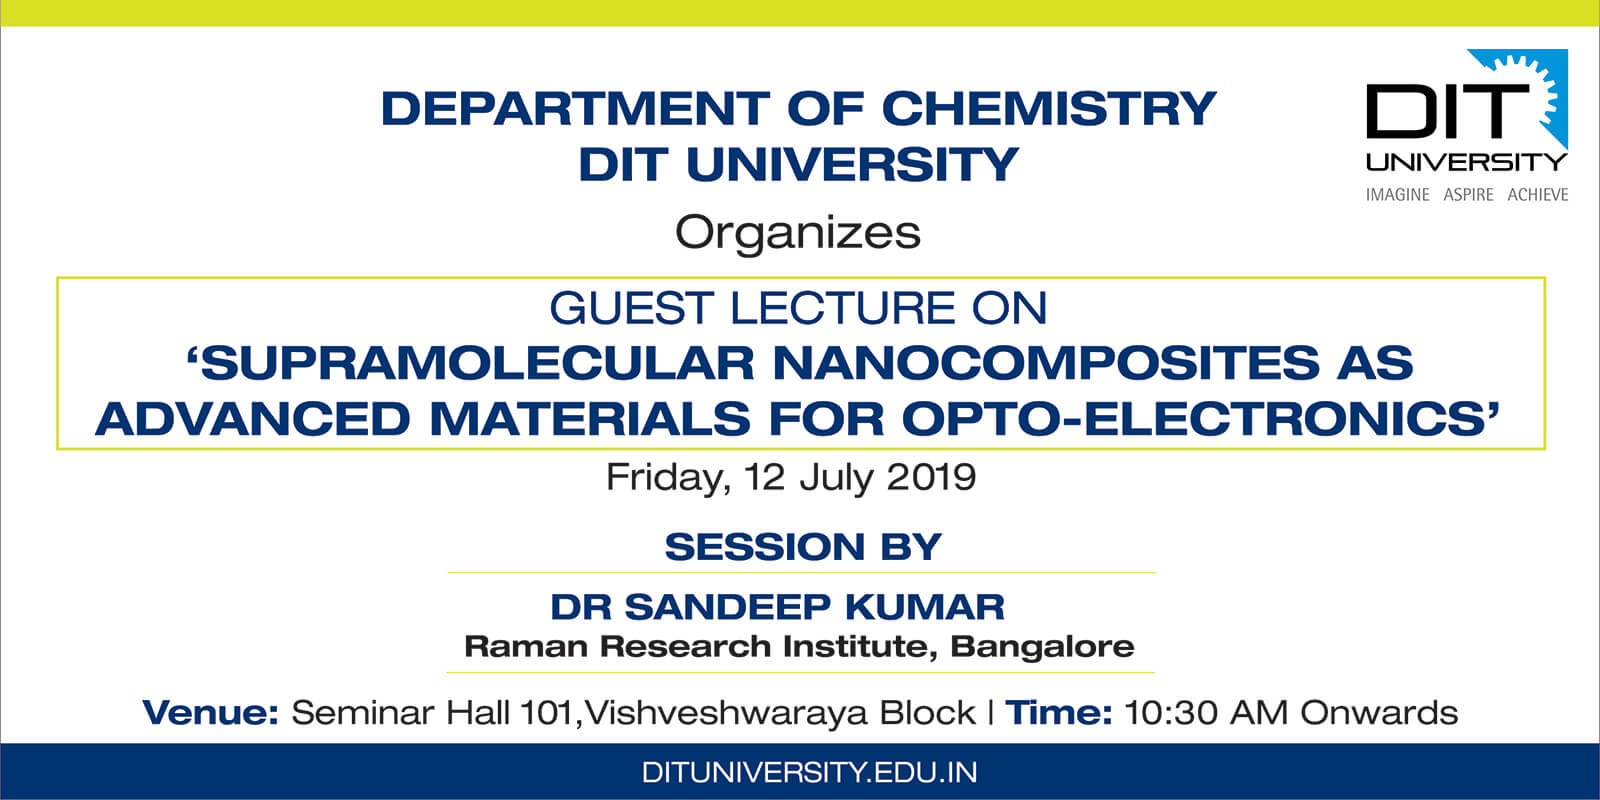 GUEST LECTURE ON 'SUPRAMOLECULAR NANOCOMPOSITES AS  ADVANCED MATERIALS FOR OPTO-ELECTRONICS'